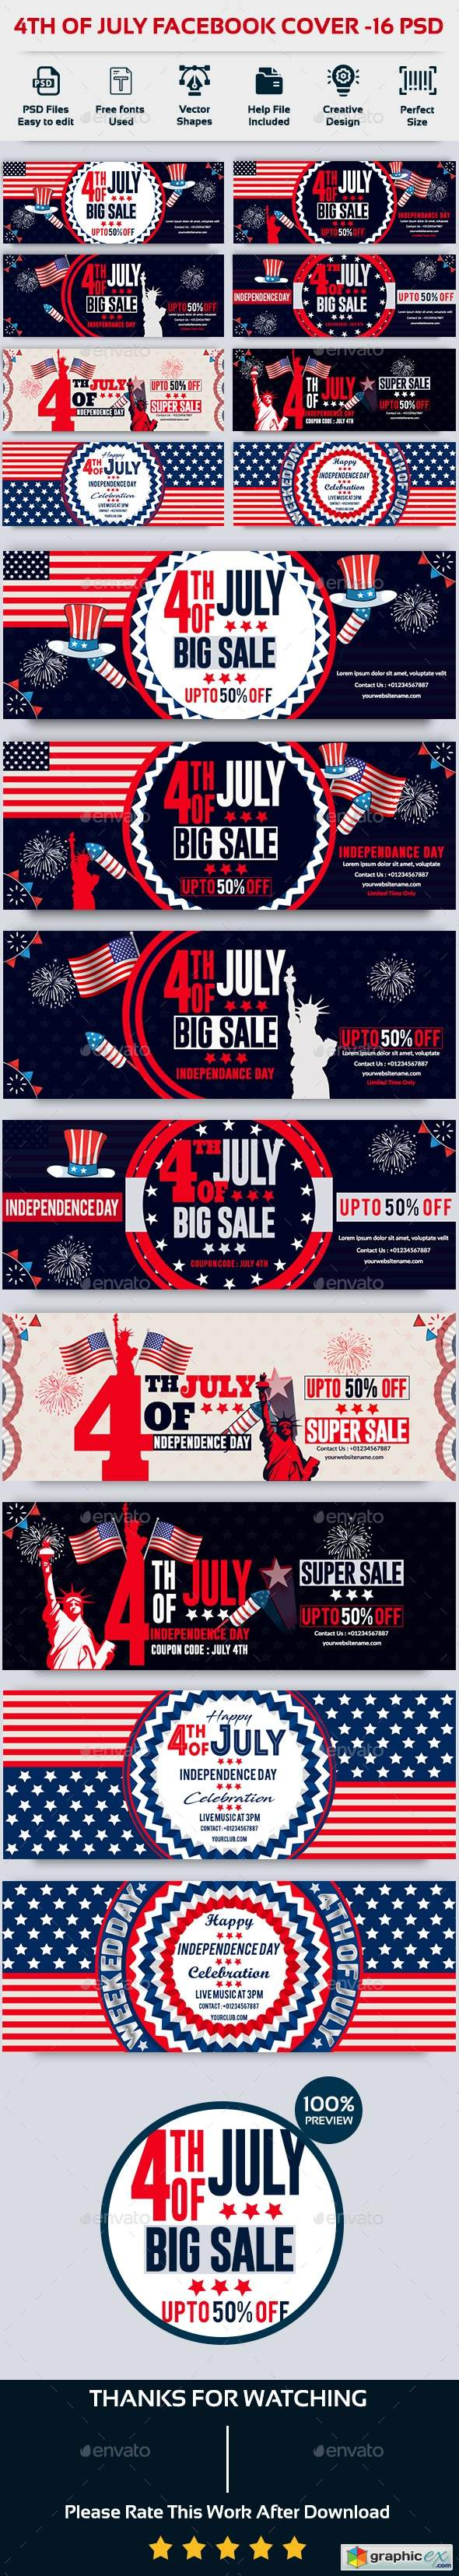 4th of July Facebook Cover-Bundle-16 PSD